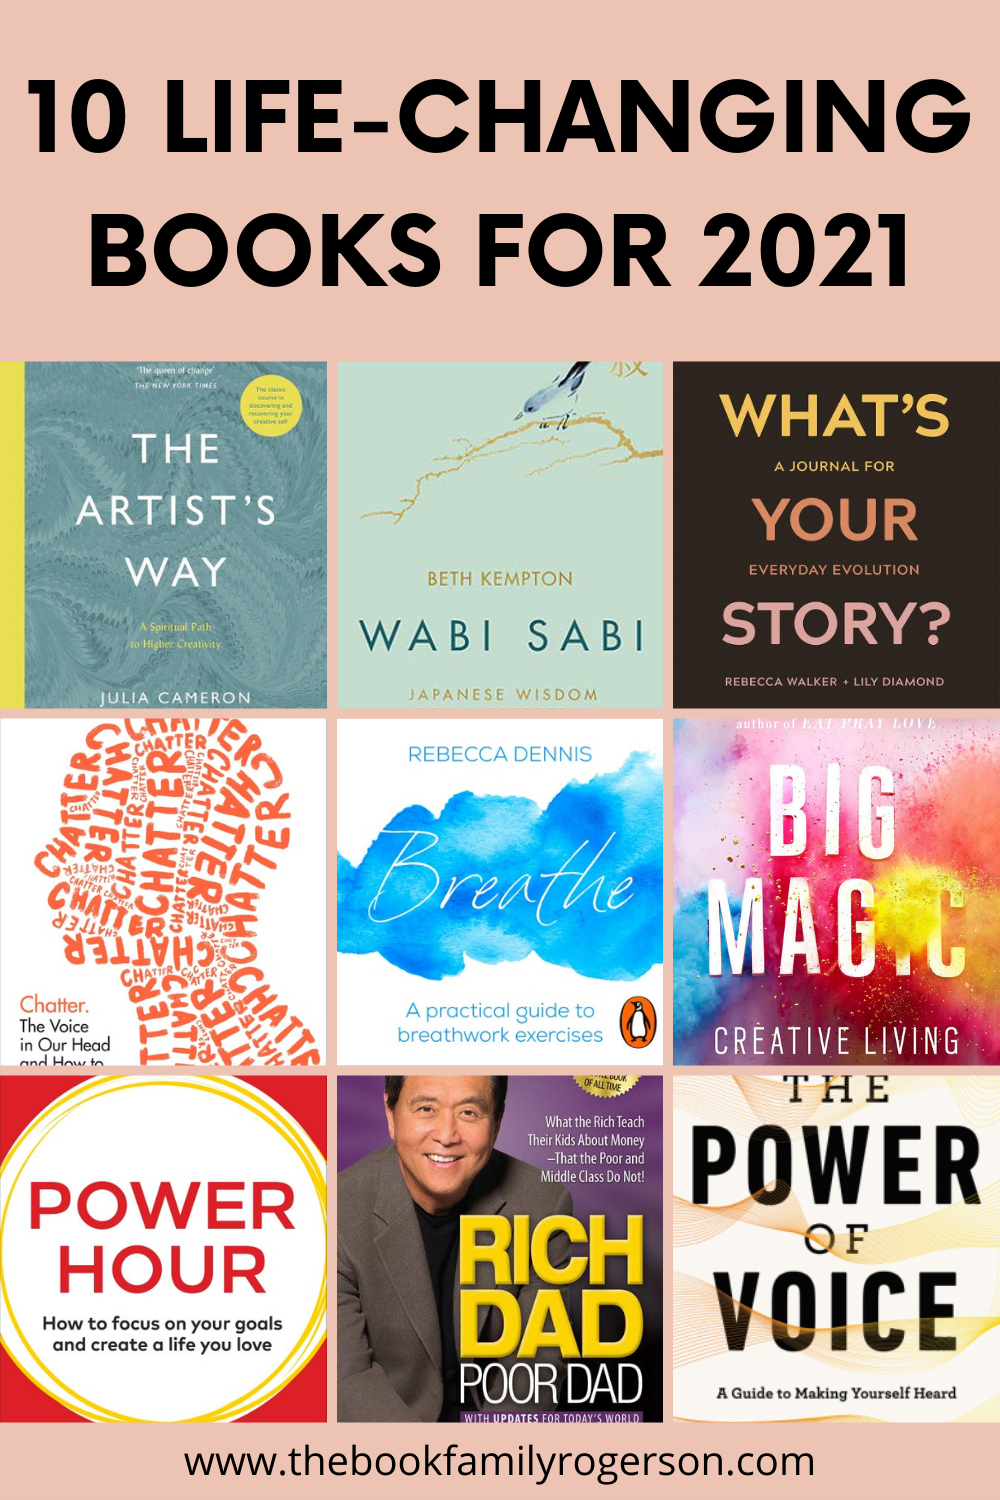 10 Life-Changing Books for 2021